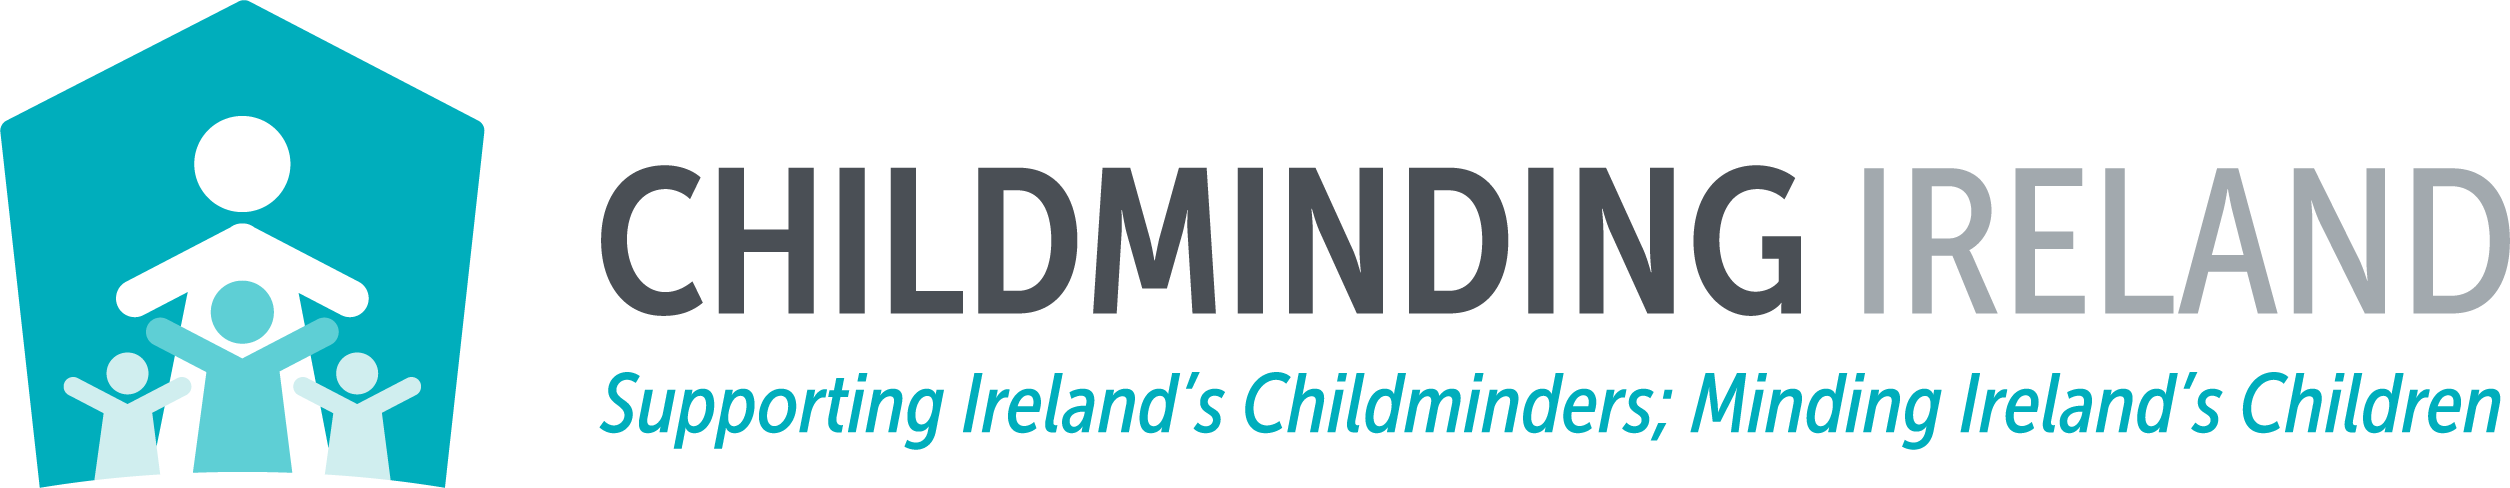 Childminding Ireland